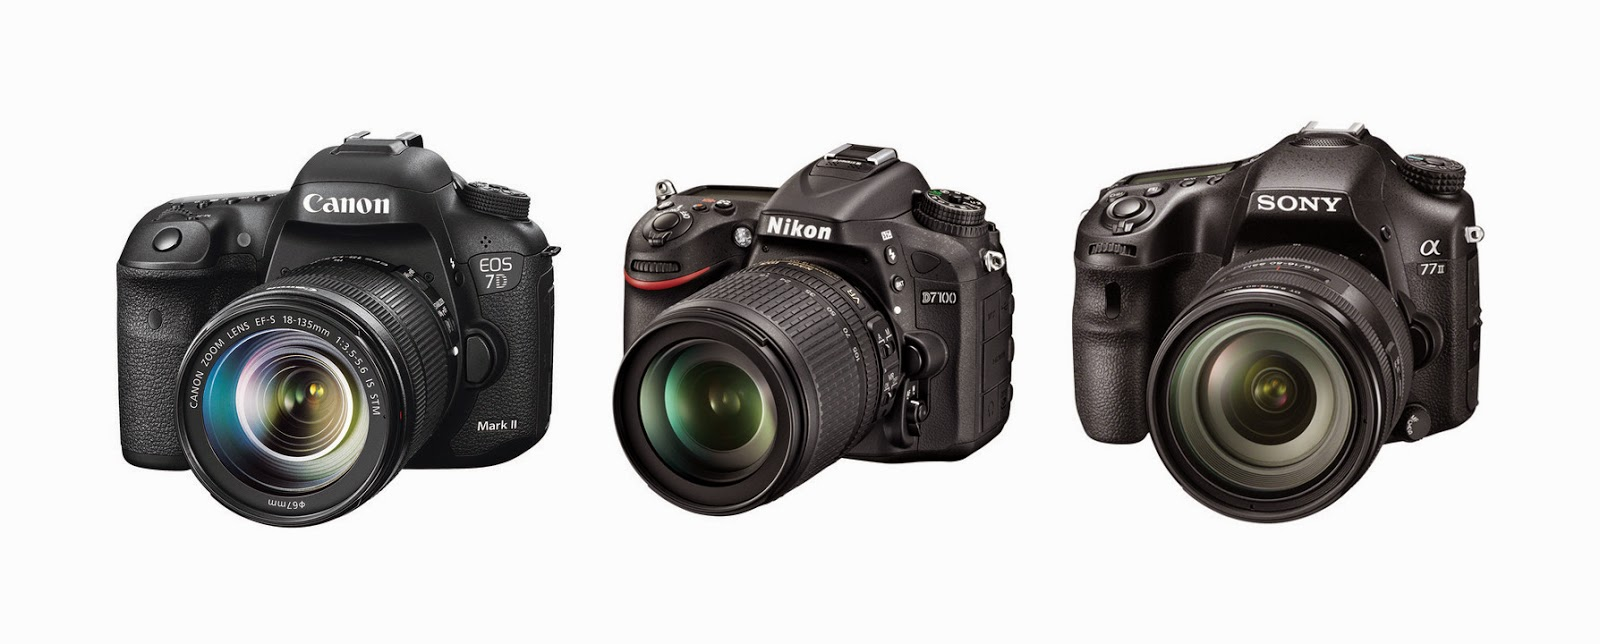 Canon EOS 7D Mark II, Canon EOS 7D Mark II vs Nikon D7100, DSLR camera, Nueva cámara DSLR, vídeo Full-HD,